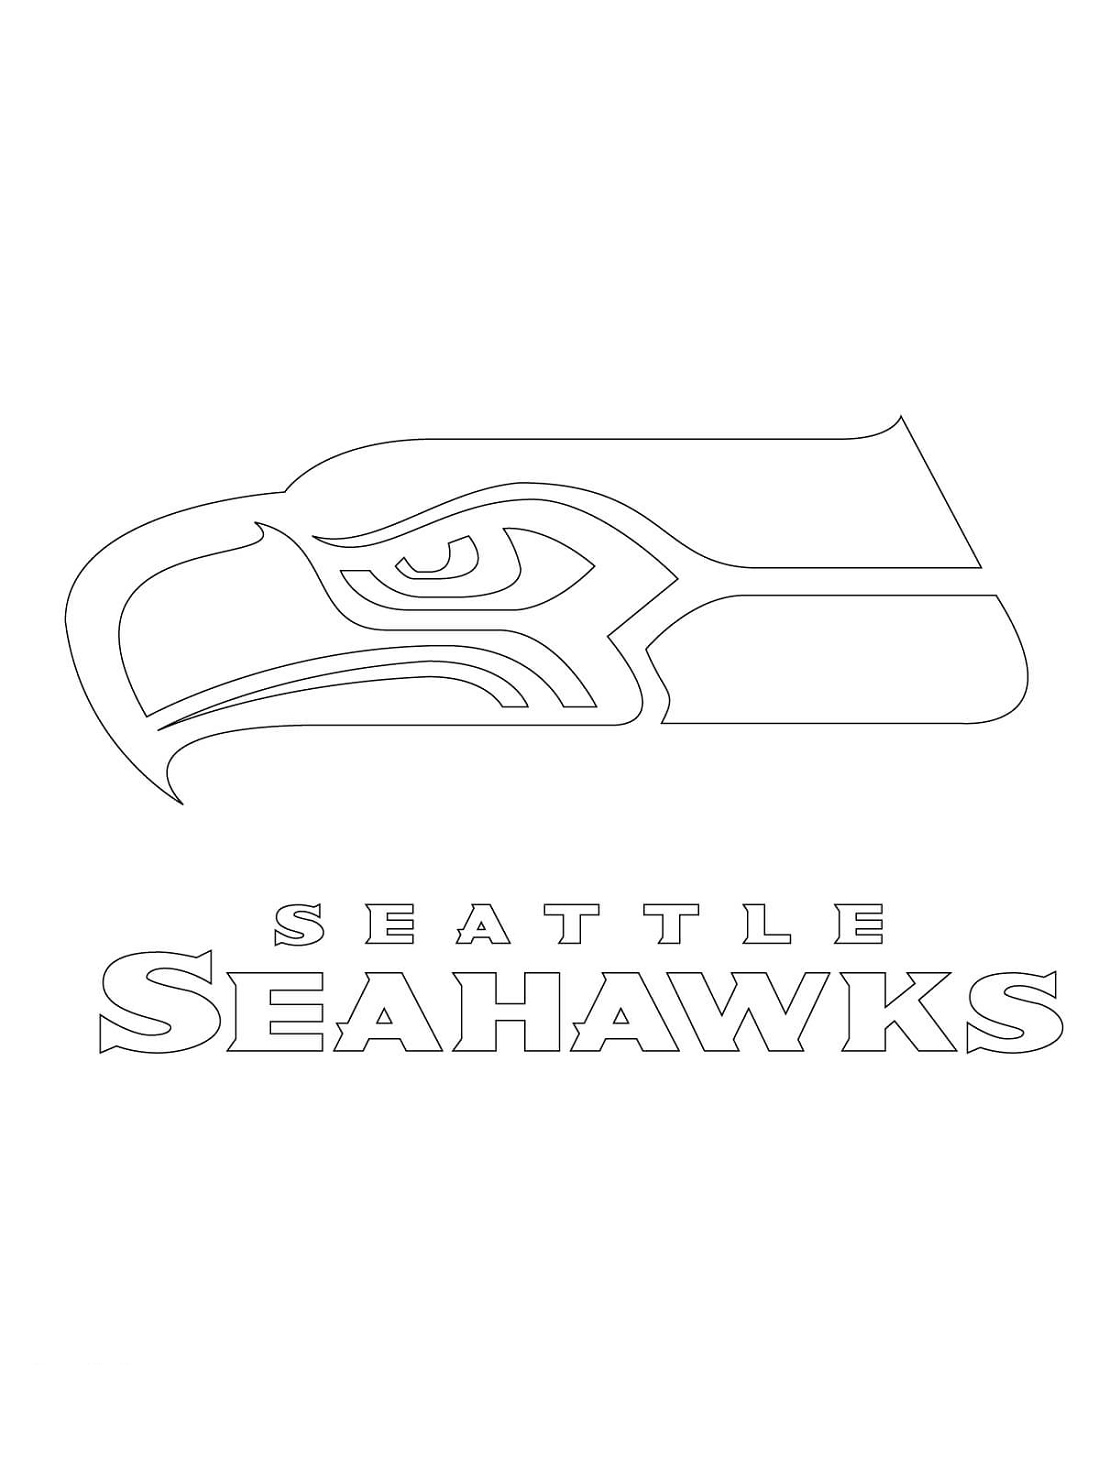 Seahawks Coloring Pages Logo